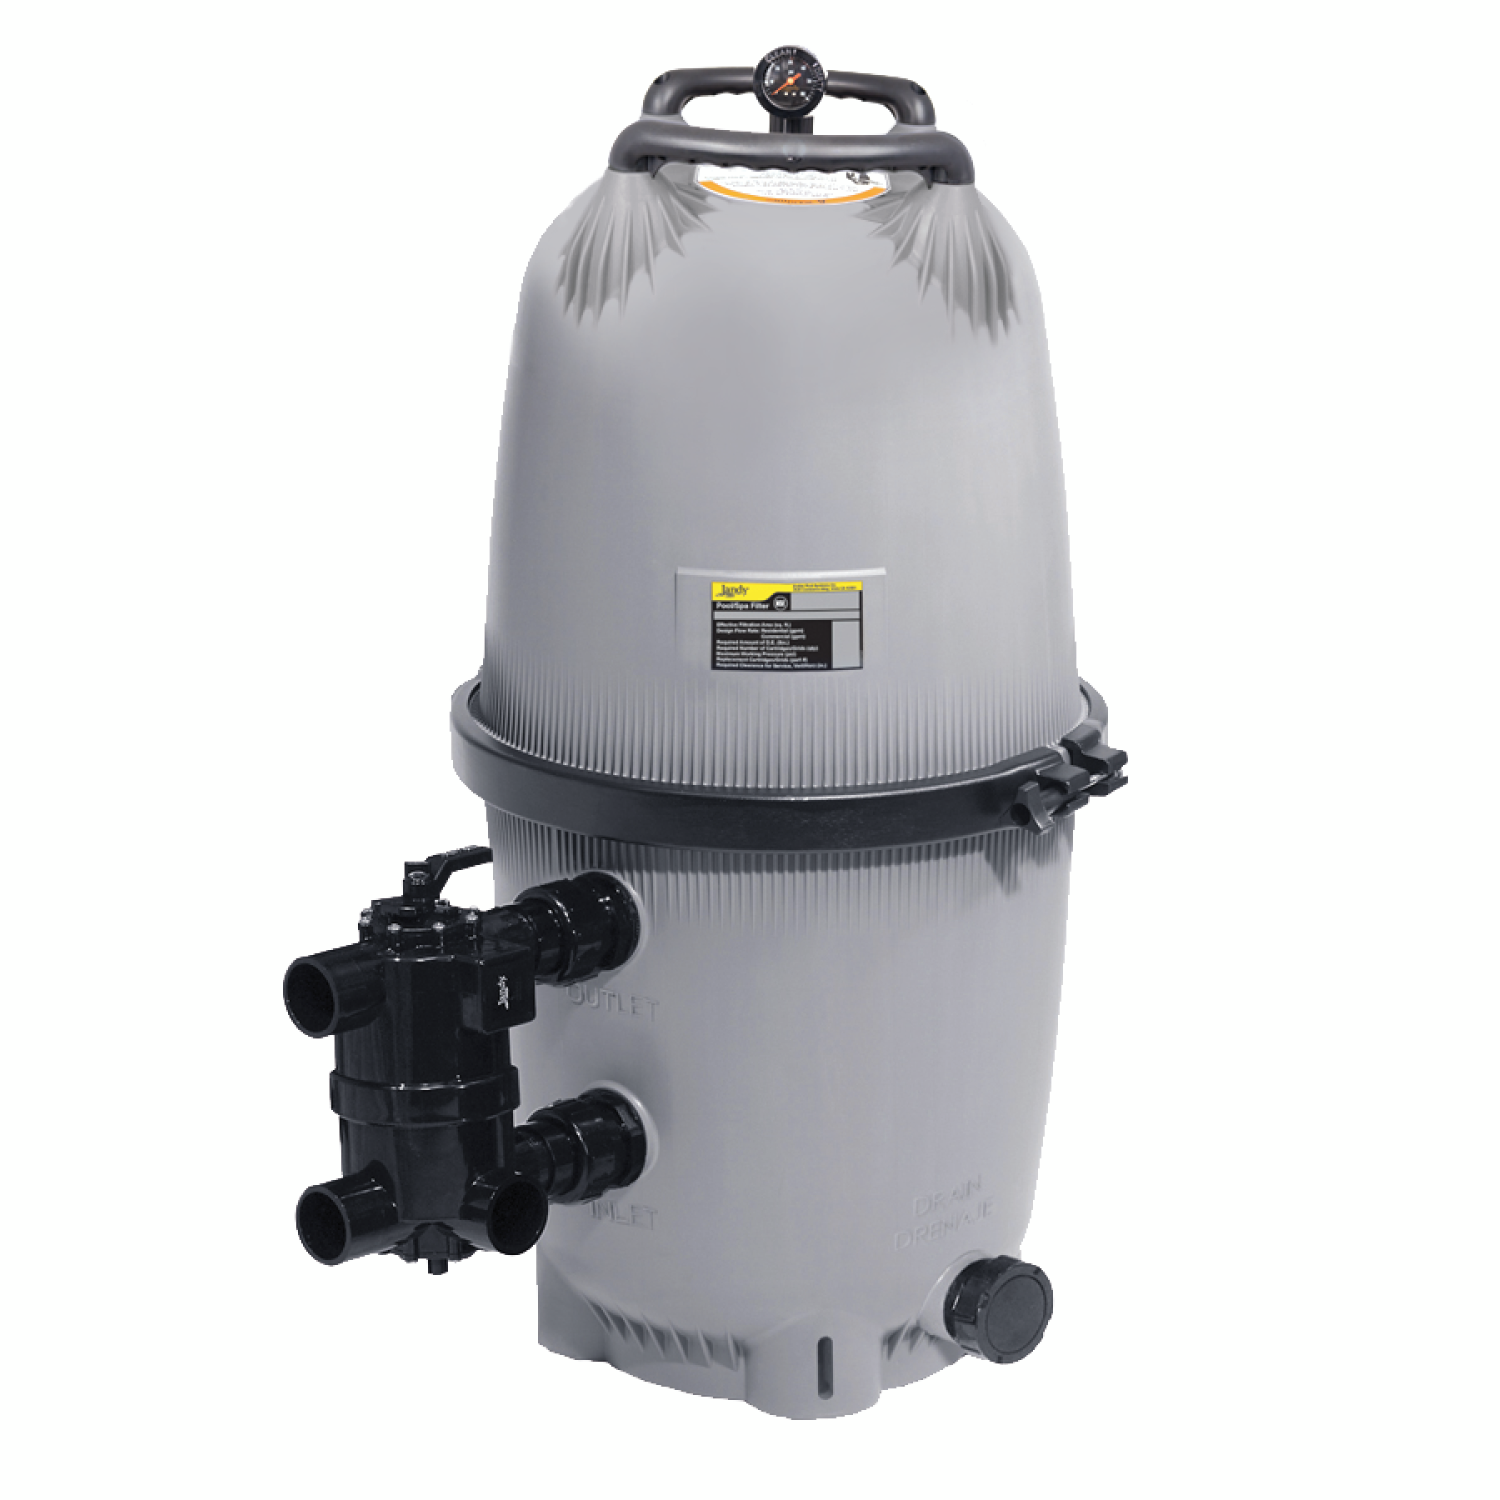 Dev diatomaceous earth filter jandy pro series for Diatomaceous earth substitute for swimming pools